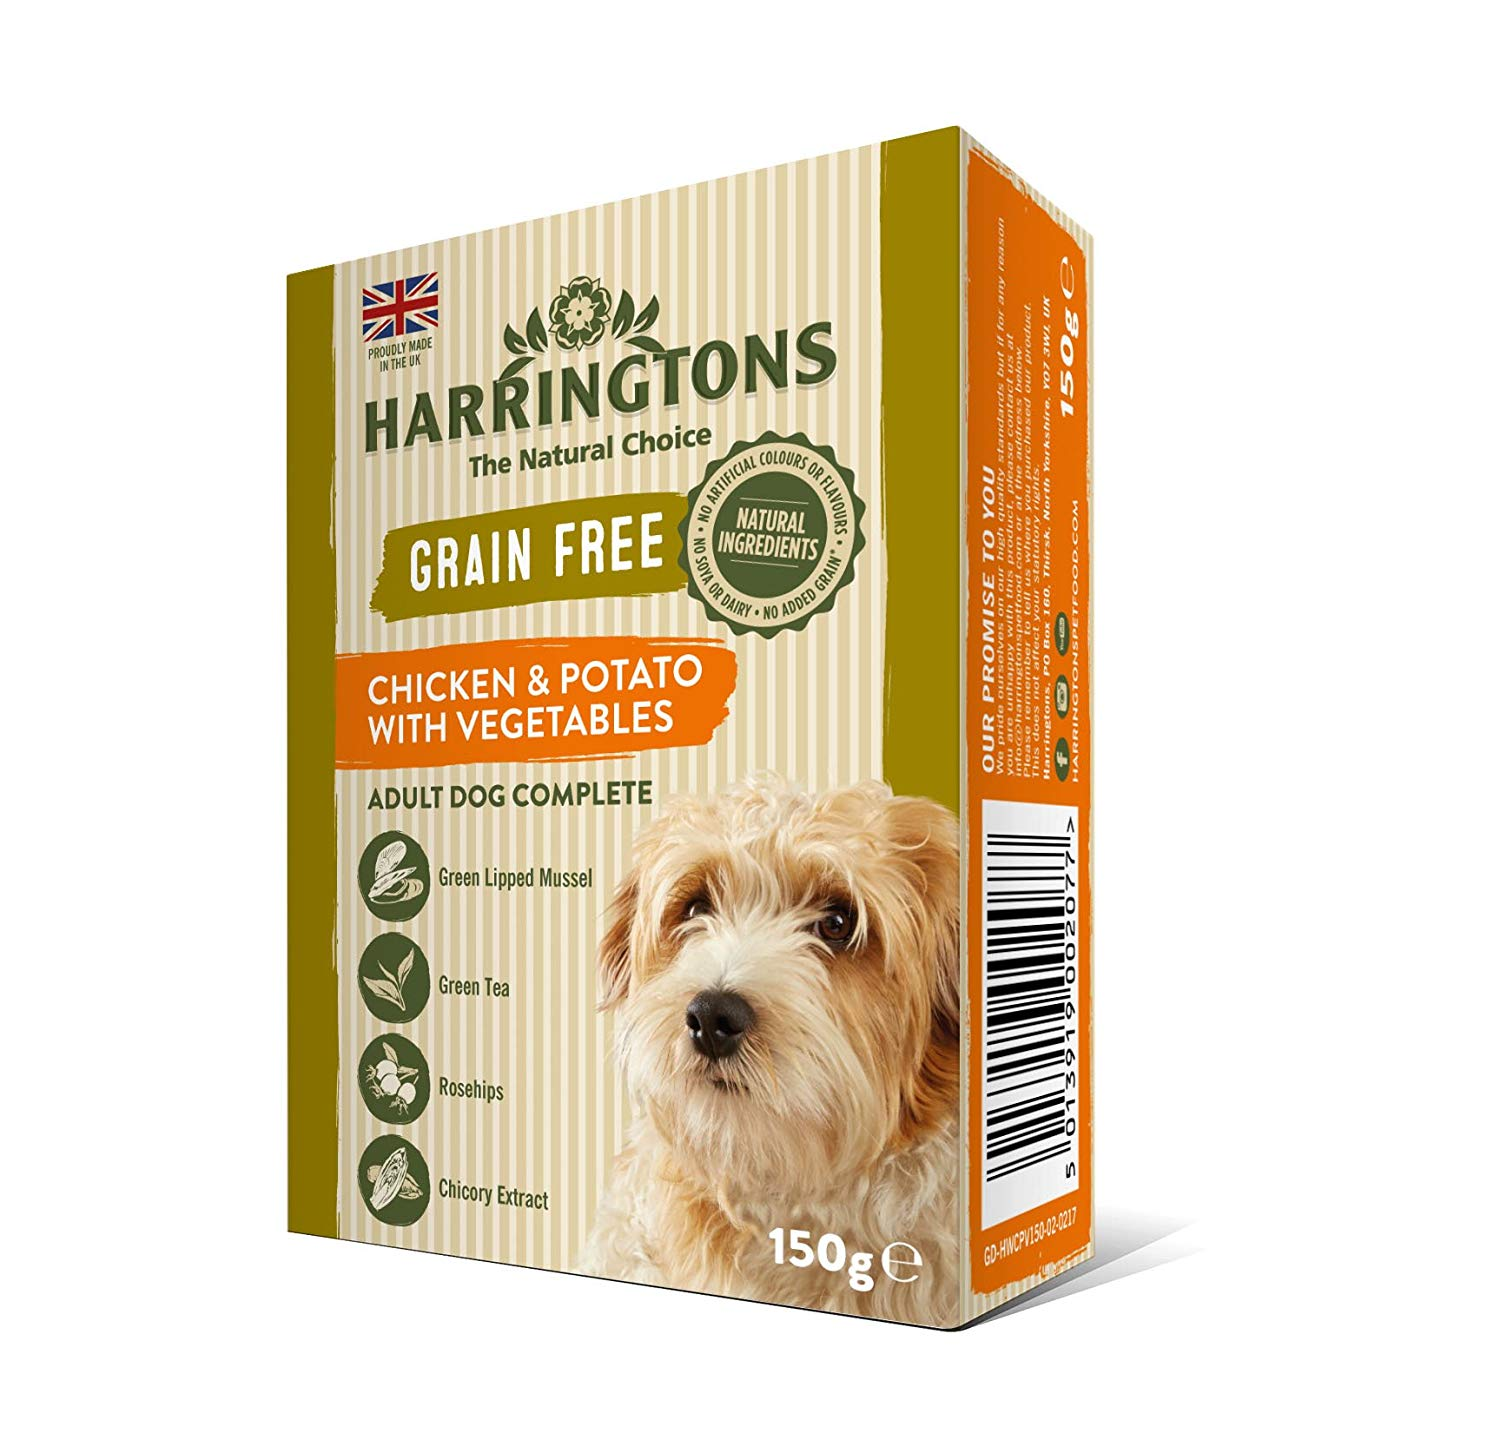 Amazon Pantry Harringtons Wet Chicken and Potato Dog Food, 7 x 150 g – £3.5